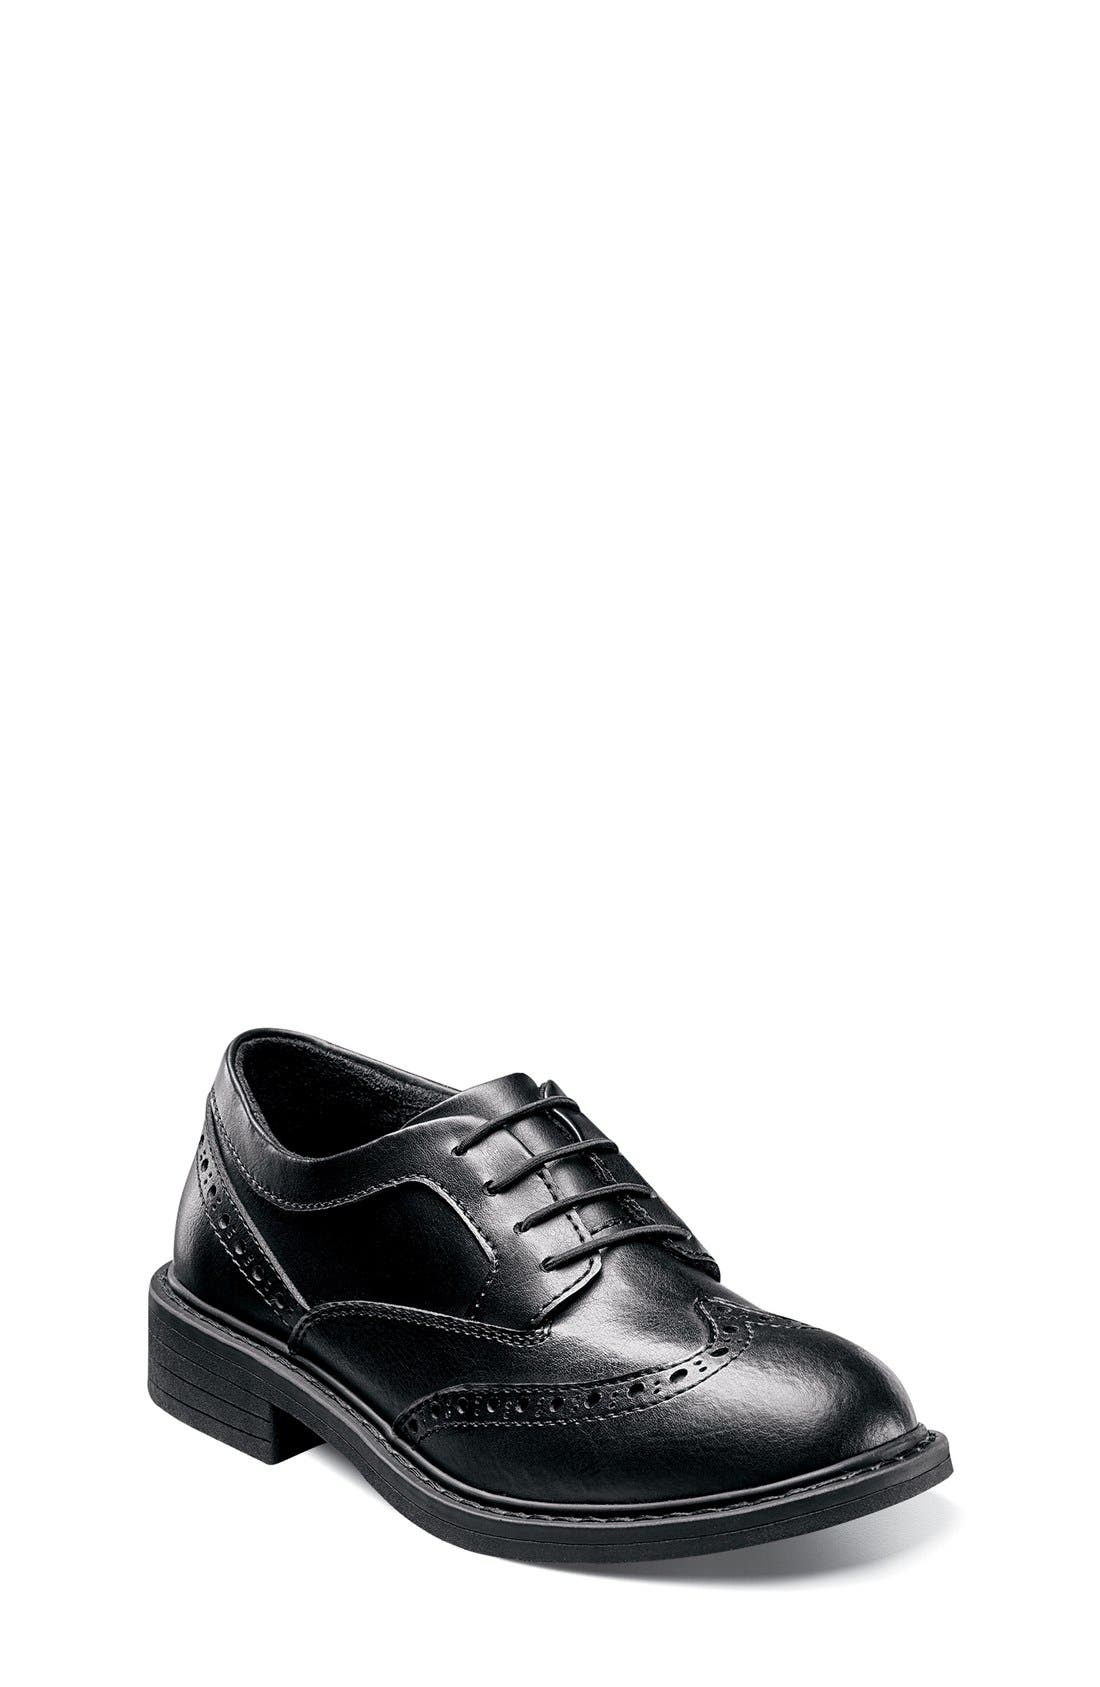 Florsheim 'Studio' Wingtip Oxford (Toddler, Little Kid & Big Kid)